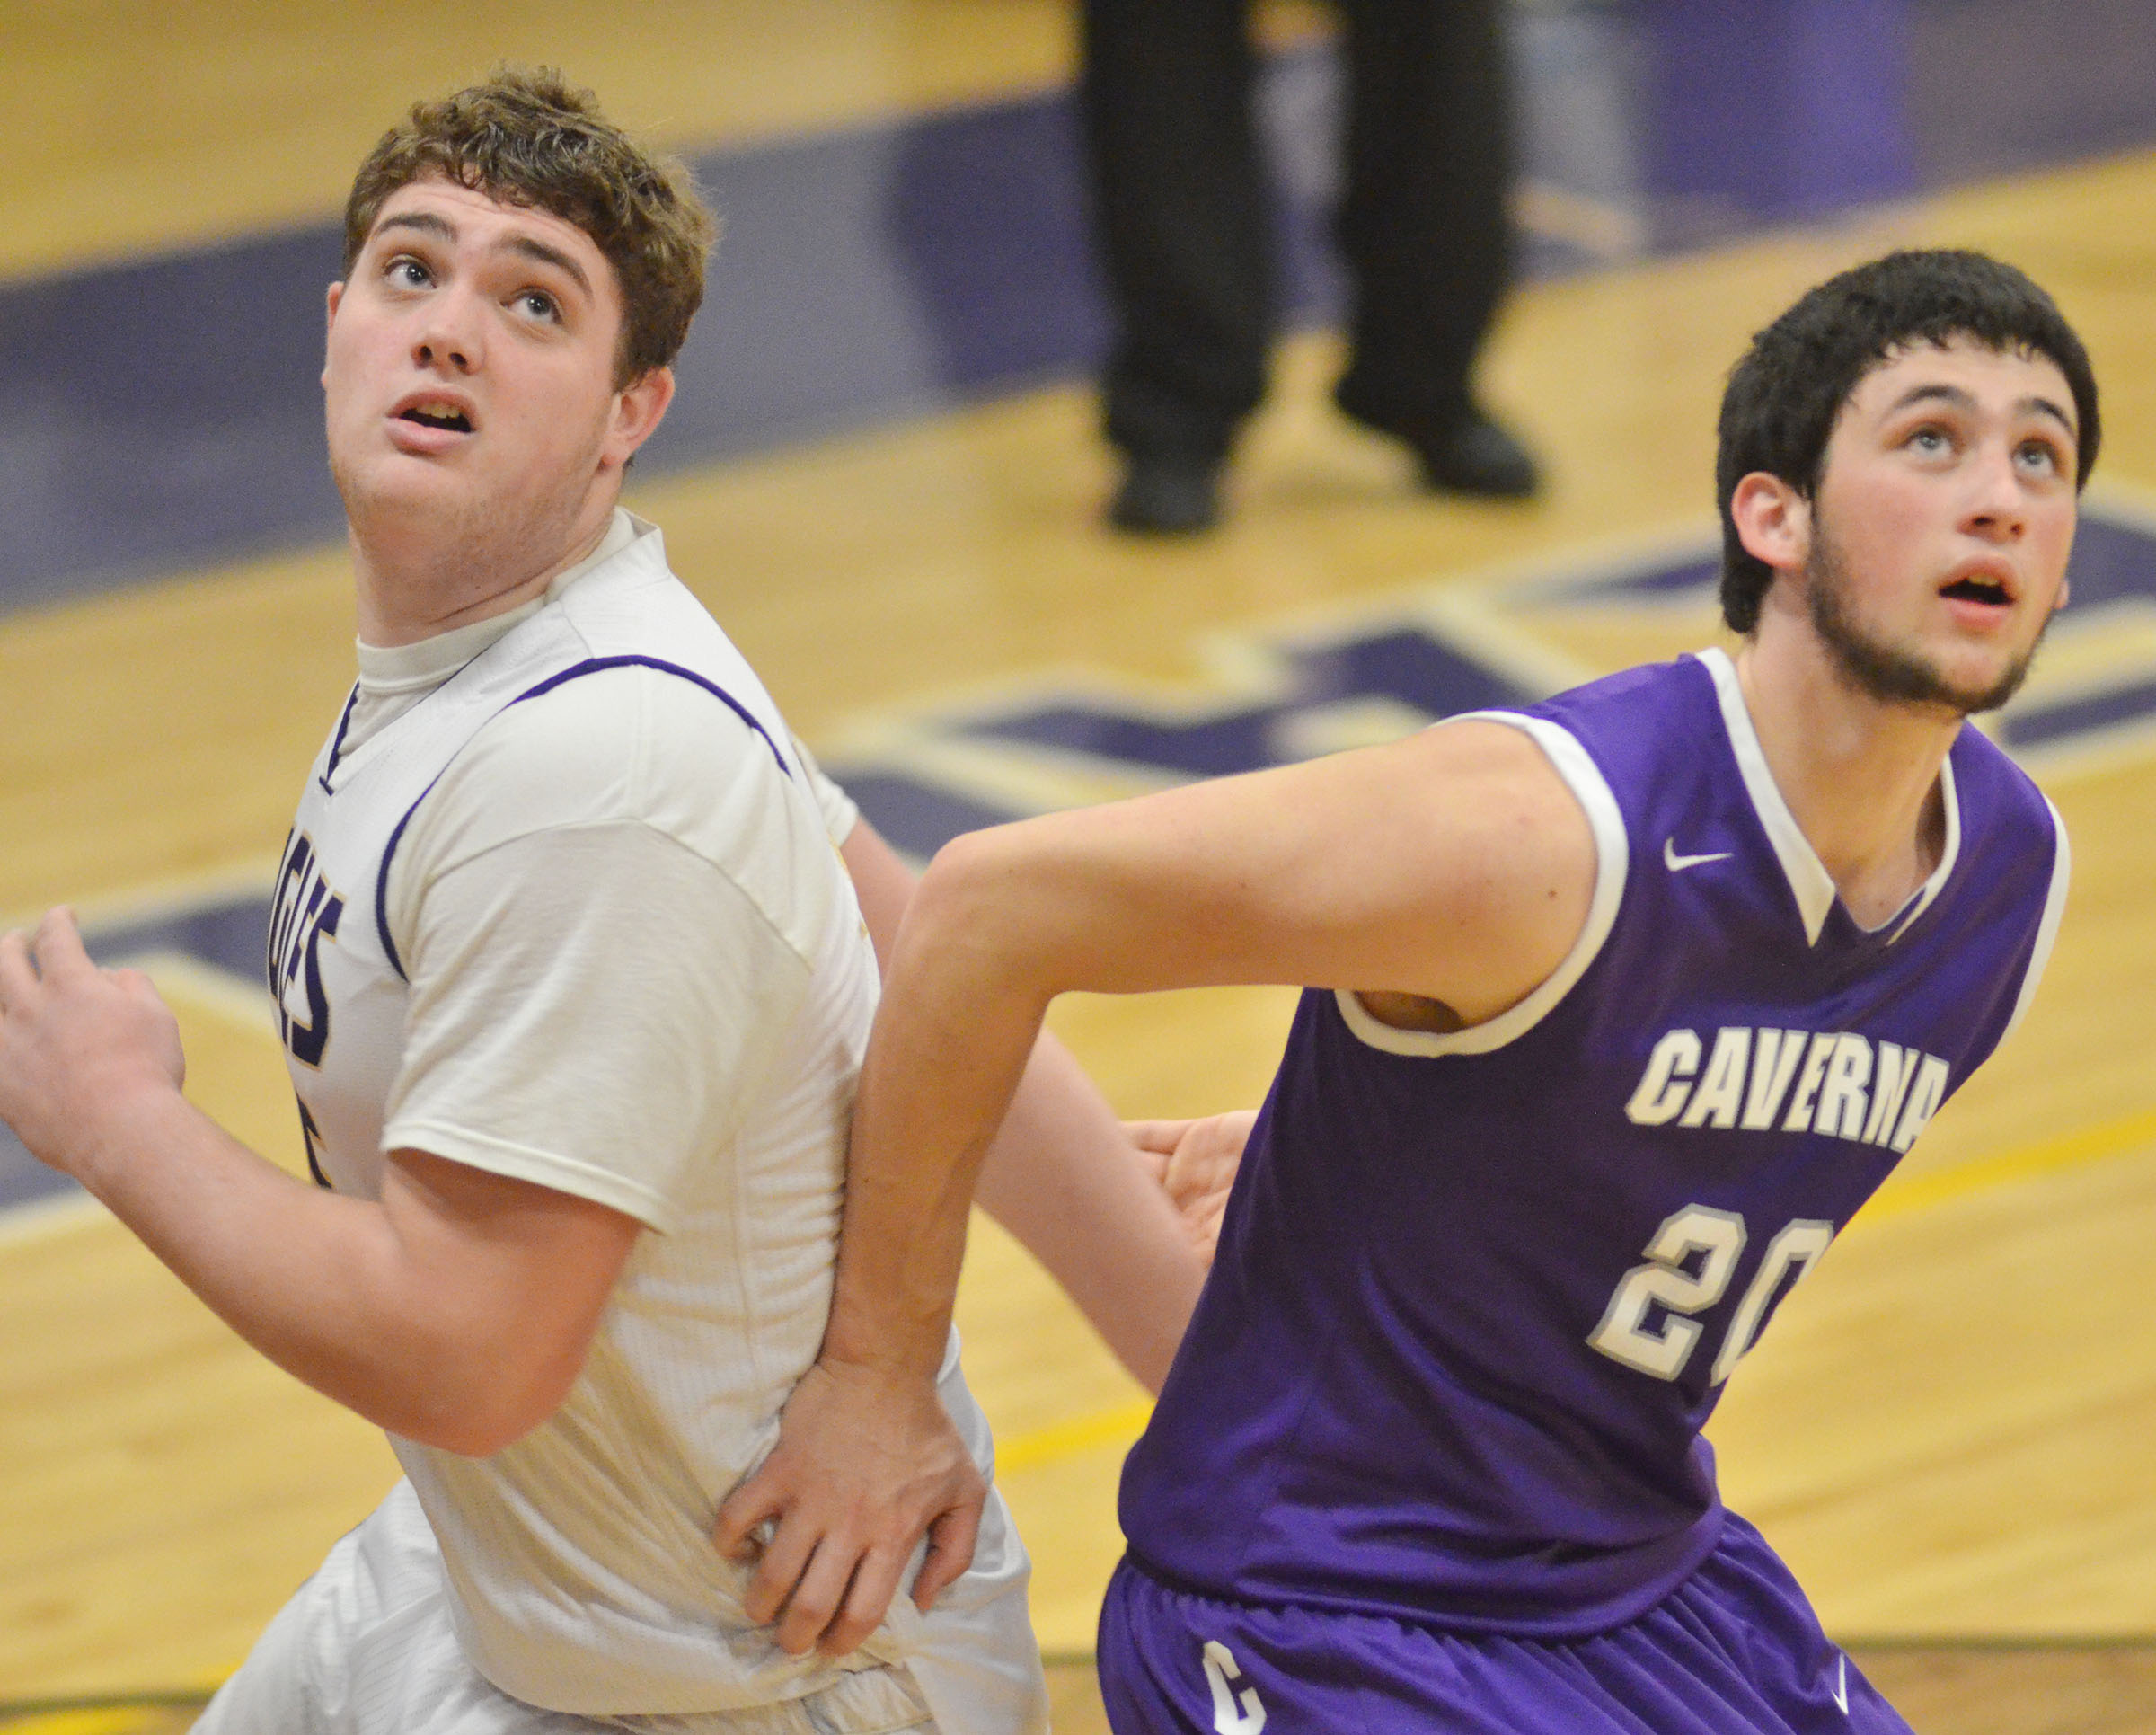 CHS sophomore Lane Bottoms looks for the rebound.